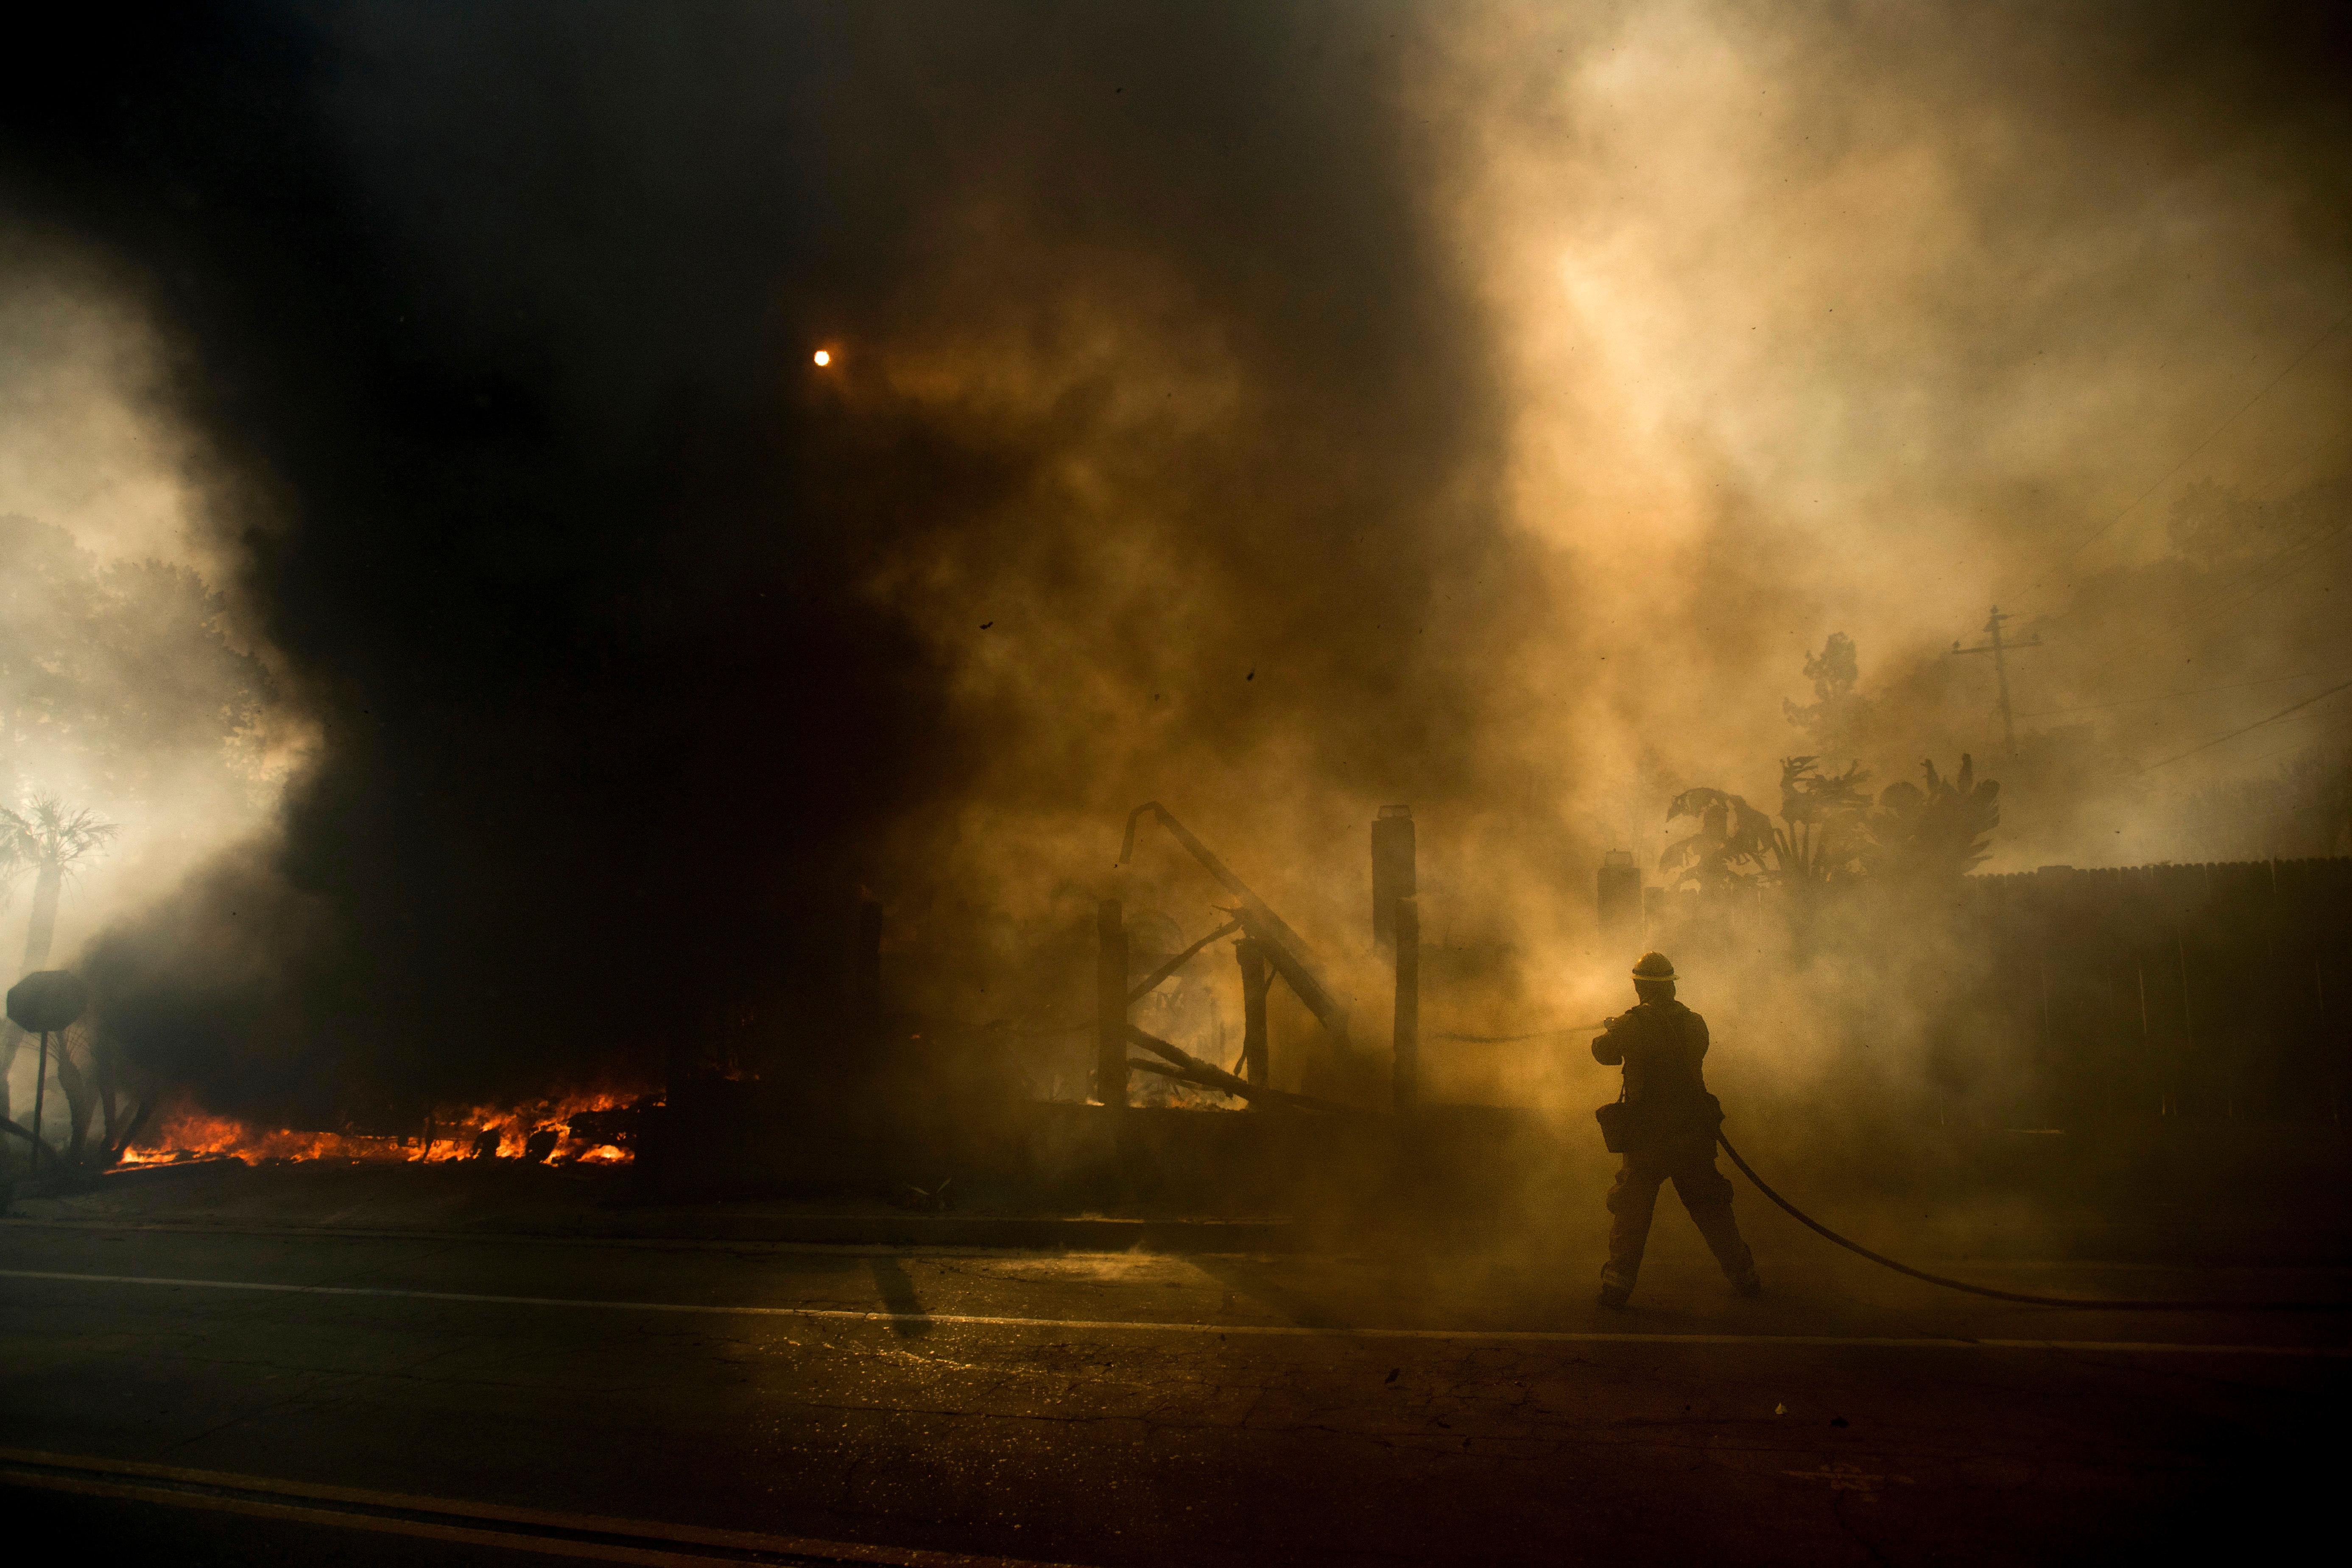 A firefighter tries to keep flames from spreading while battling a wildfire in Ventura, Calif., on Tuesday, Dec. 5, 2017. (AP Photo/Noah Berger)